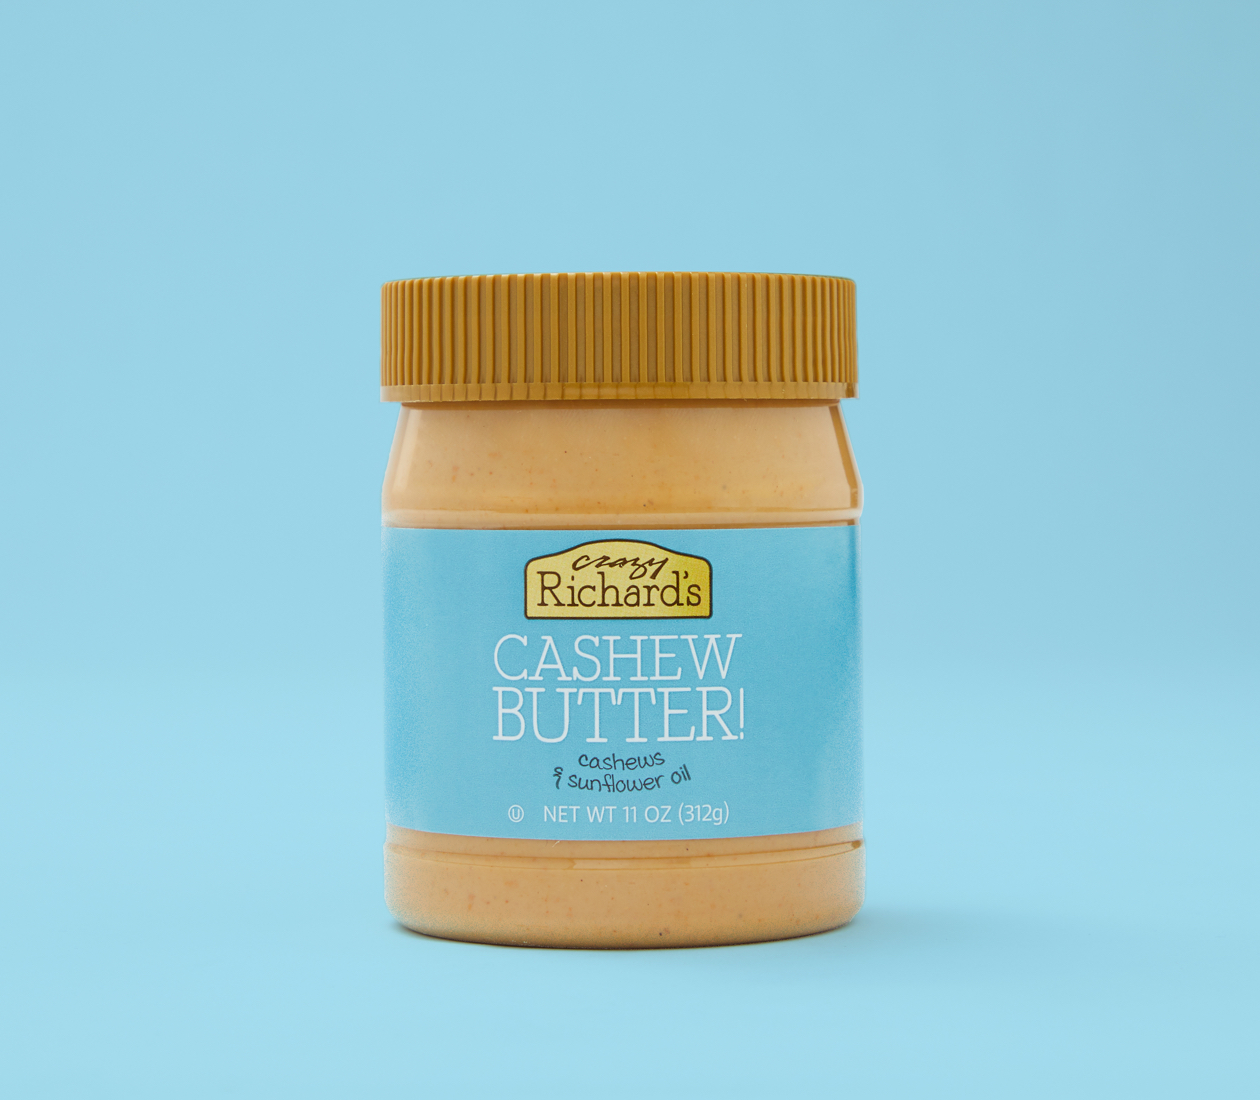 Crazy Richard's cashew butter on blue background